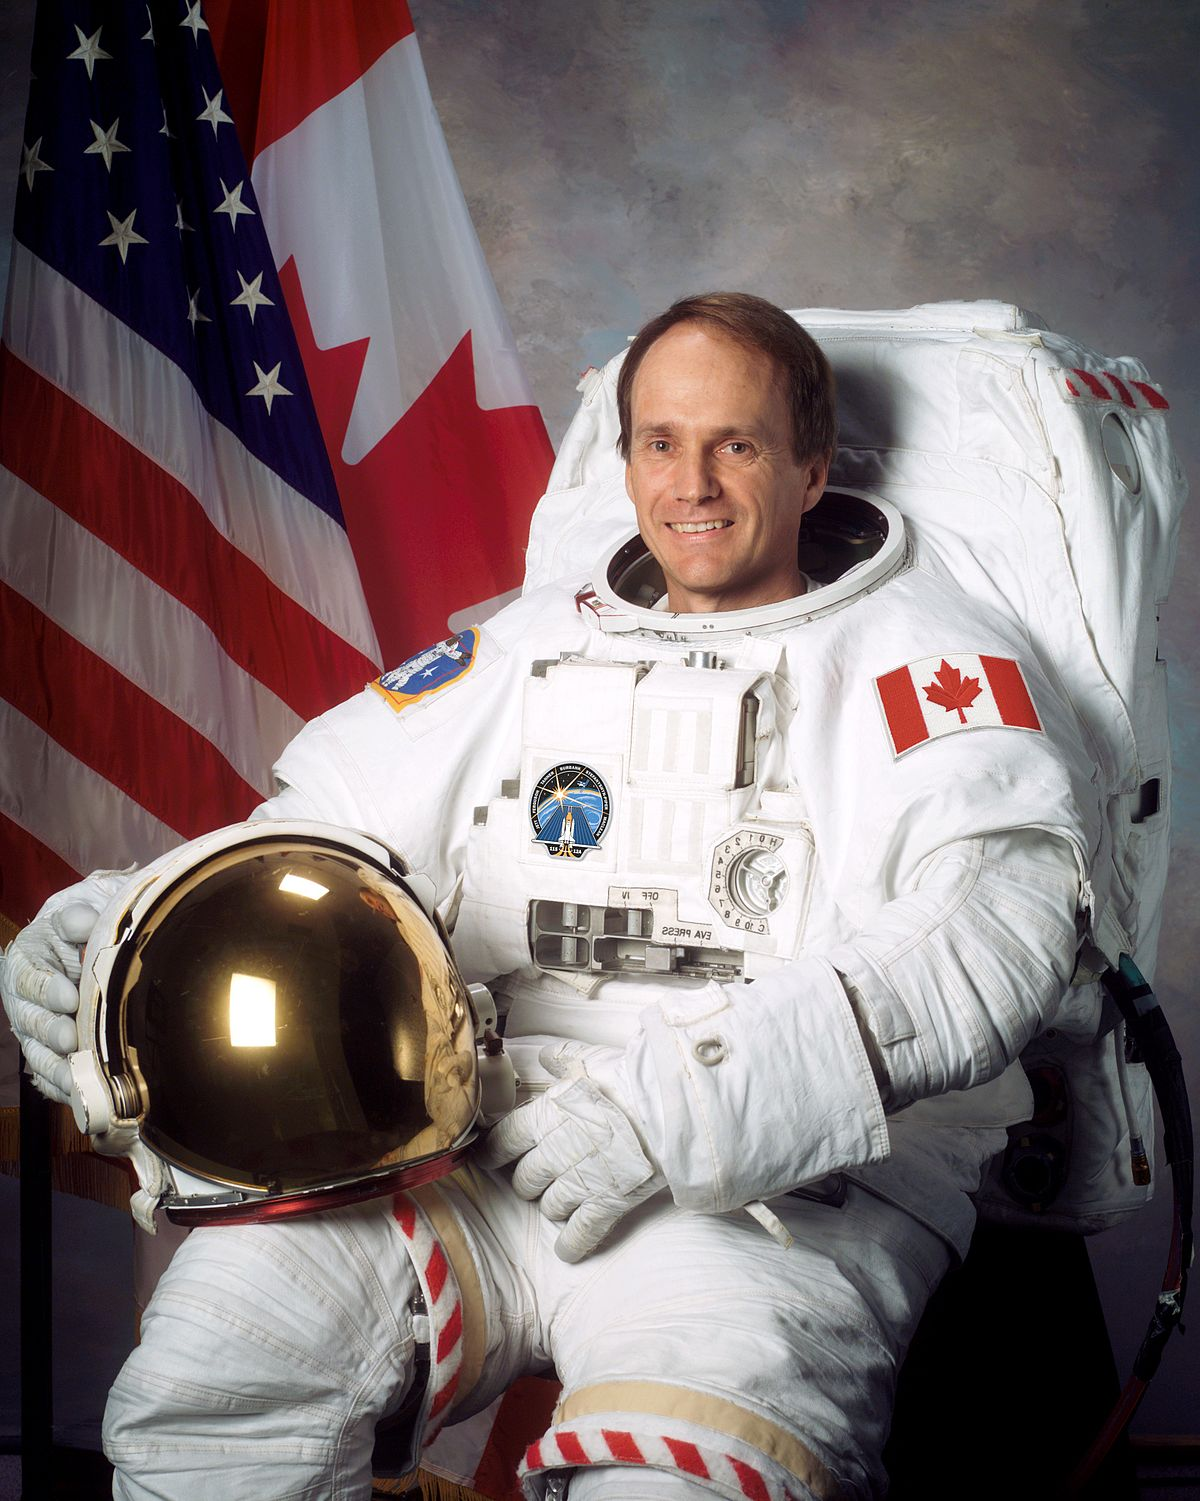 canadian space agency astronaut description - photo #4